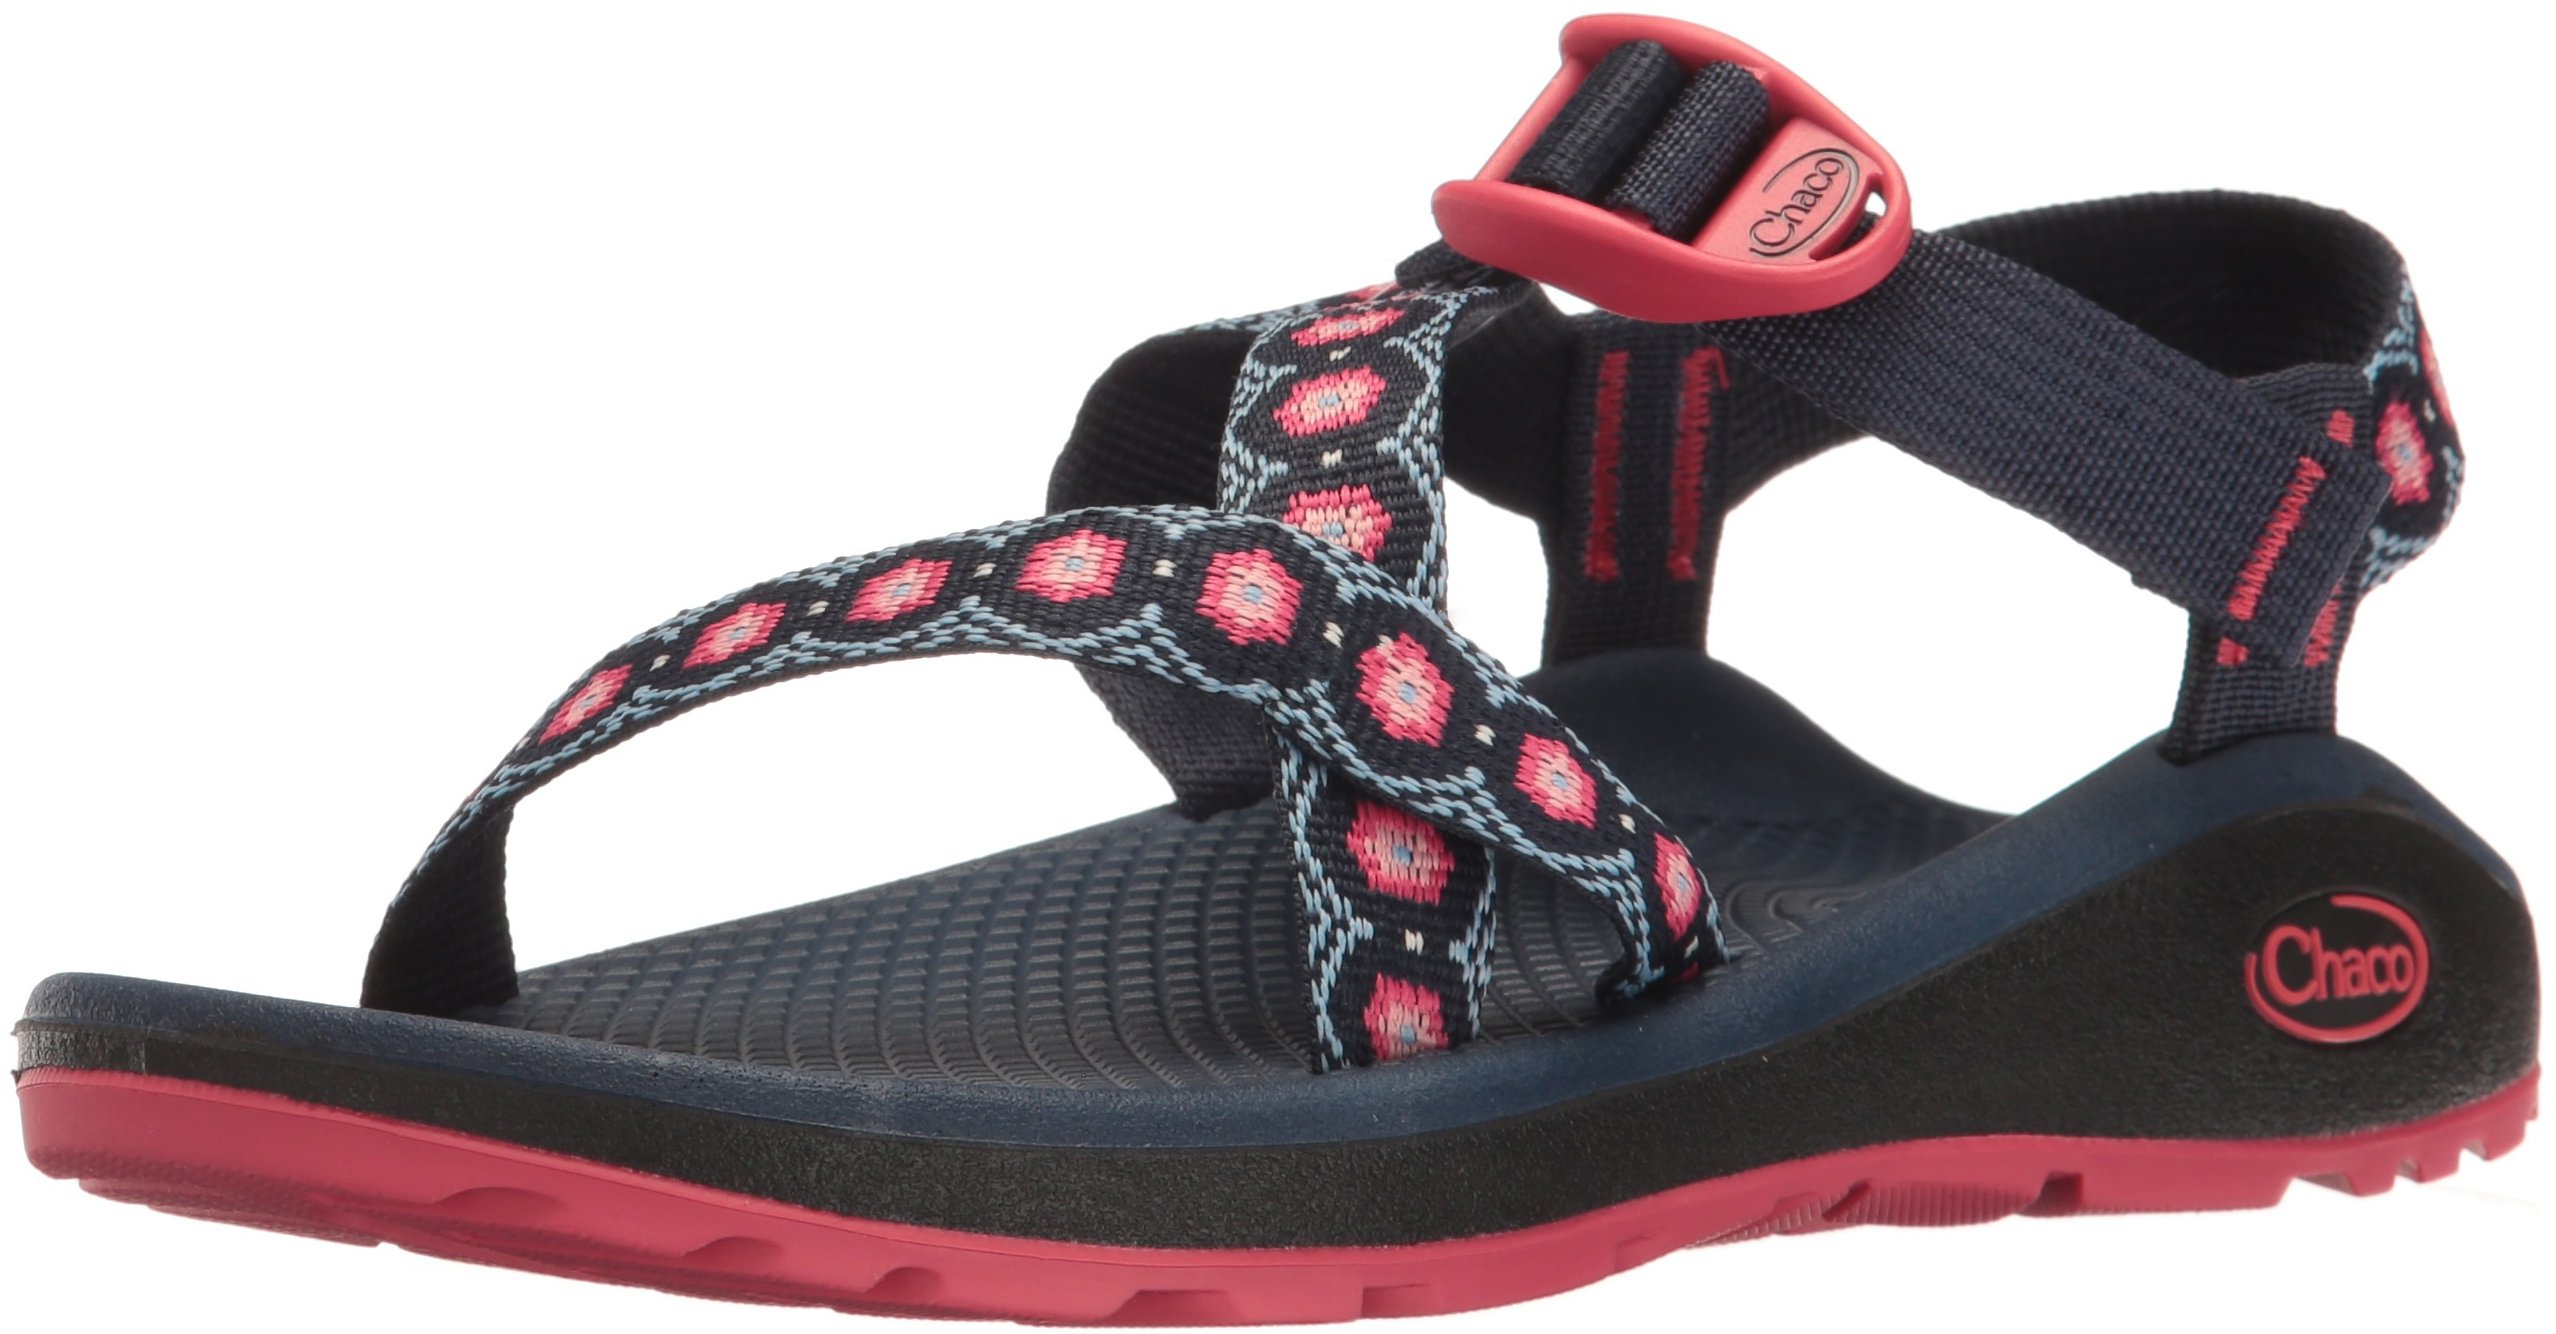 Chaco Women's Zcloud Athletic Sandal, Marquise Pink, 7 M US